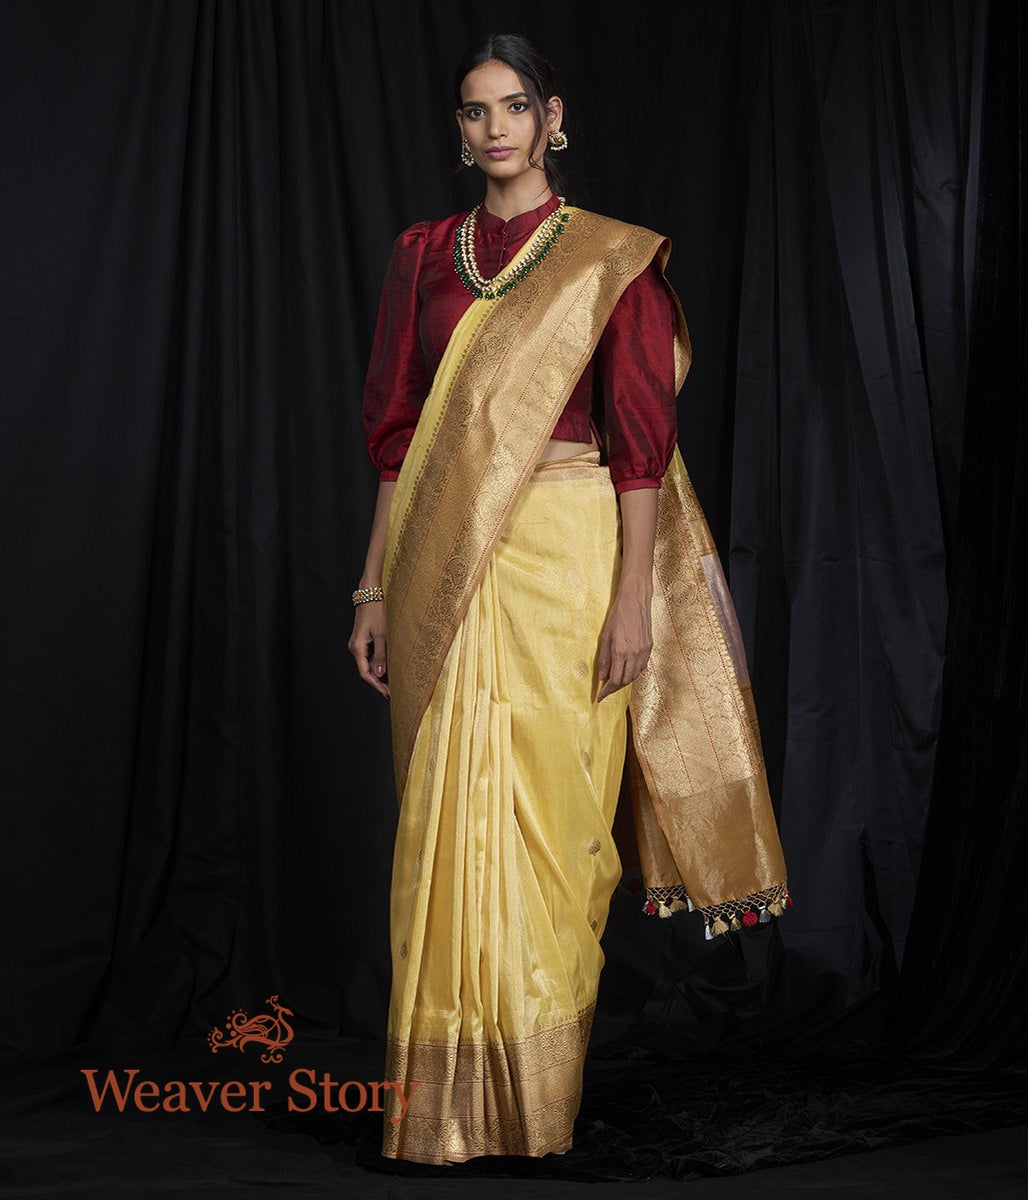 Handwoven Lemon Kadhwa Booti Saree woven in Silk Tissue